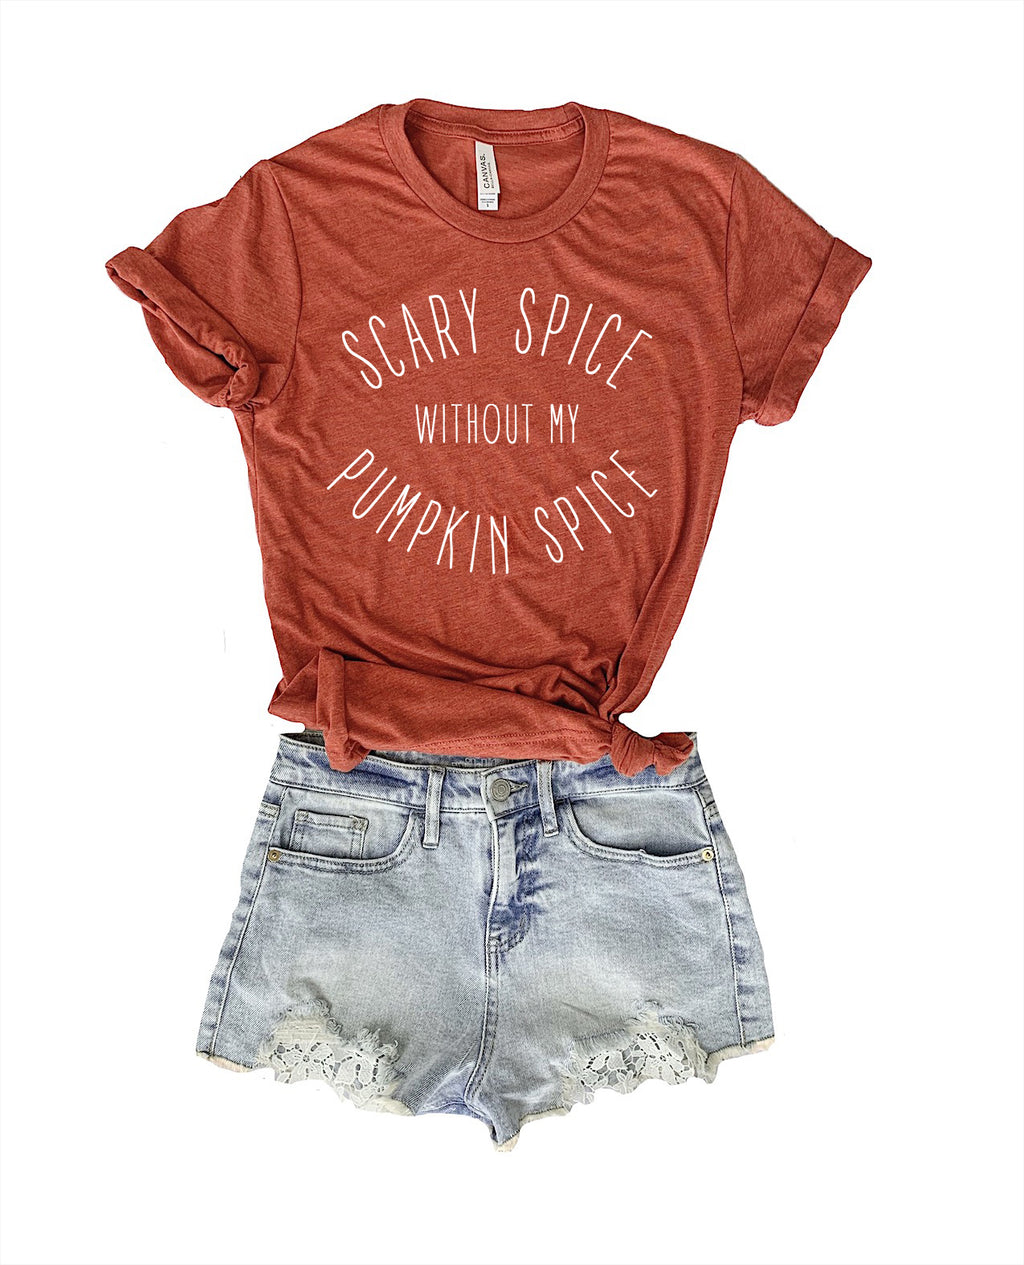 'Tis the season for pumpkin spice! The perfect pumpkin spice to shirt to add to your fall outfit!